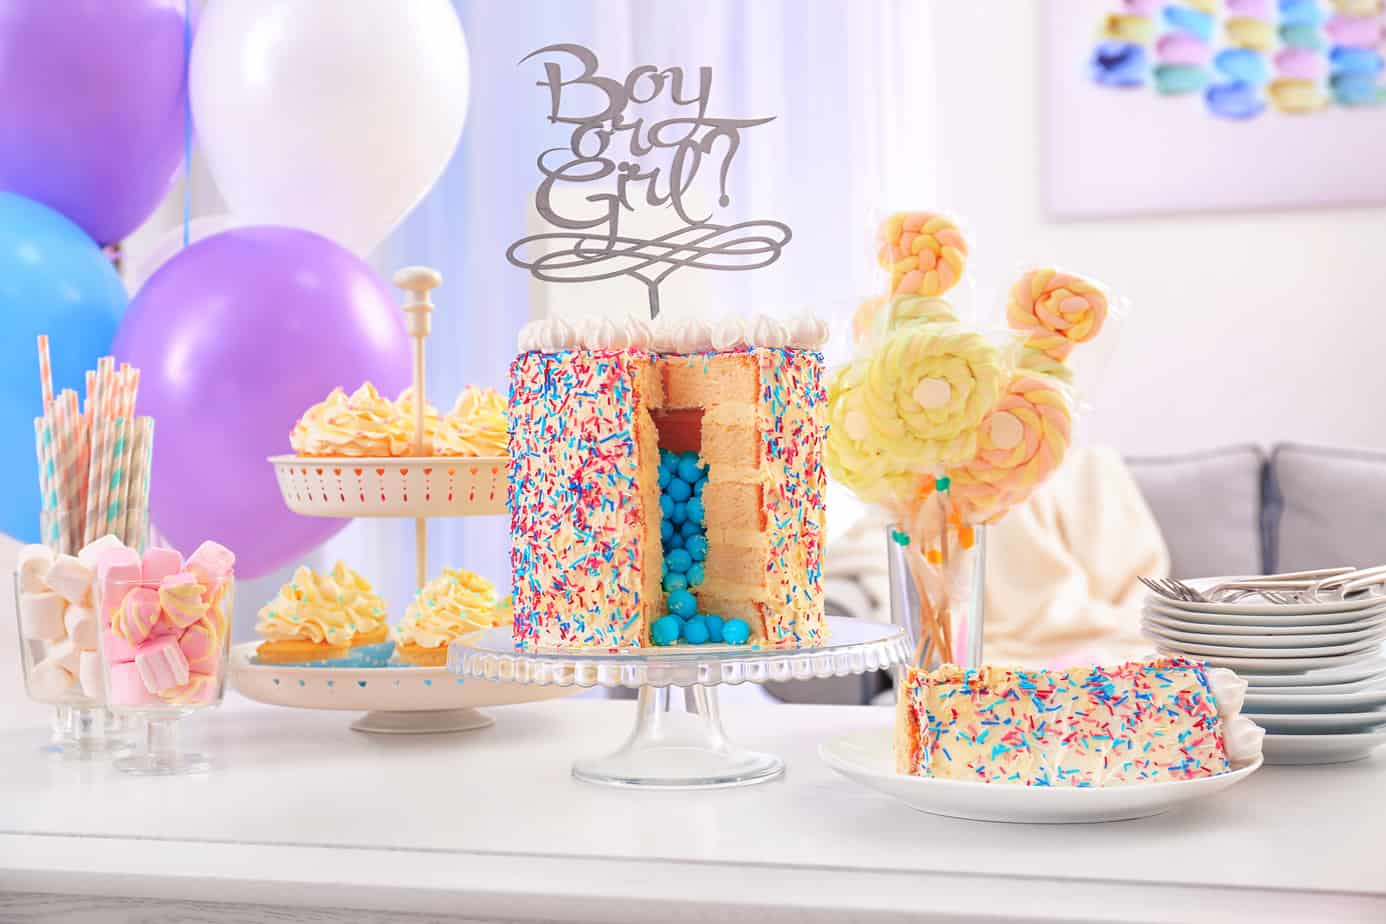 Do You Want A Cool Gender Reveal For The Grandparents 2019